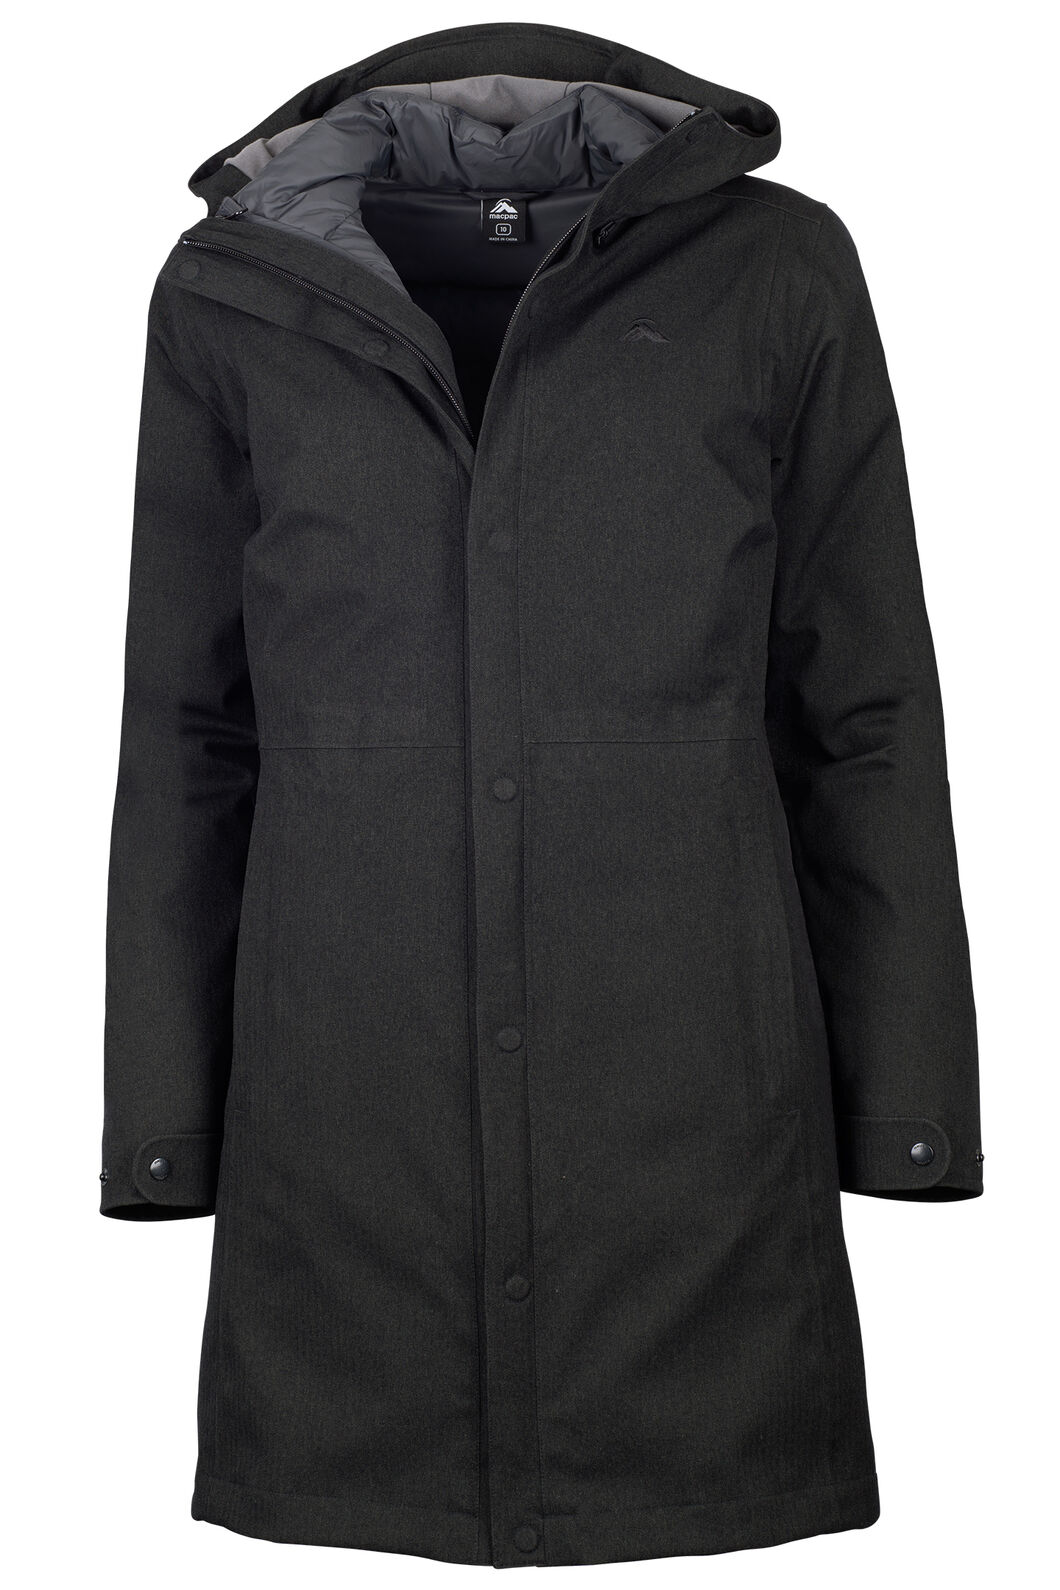 Macpac Element Three-In-One Coat - Women's, Black, hi-res